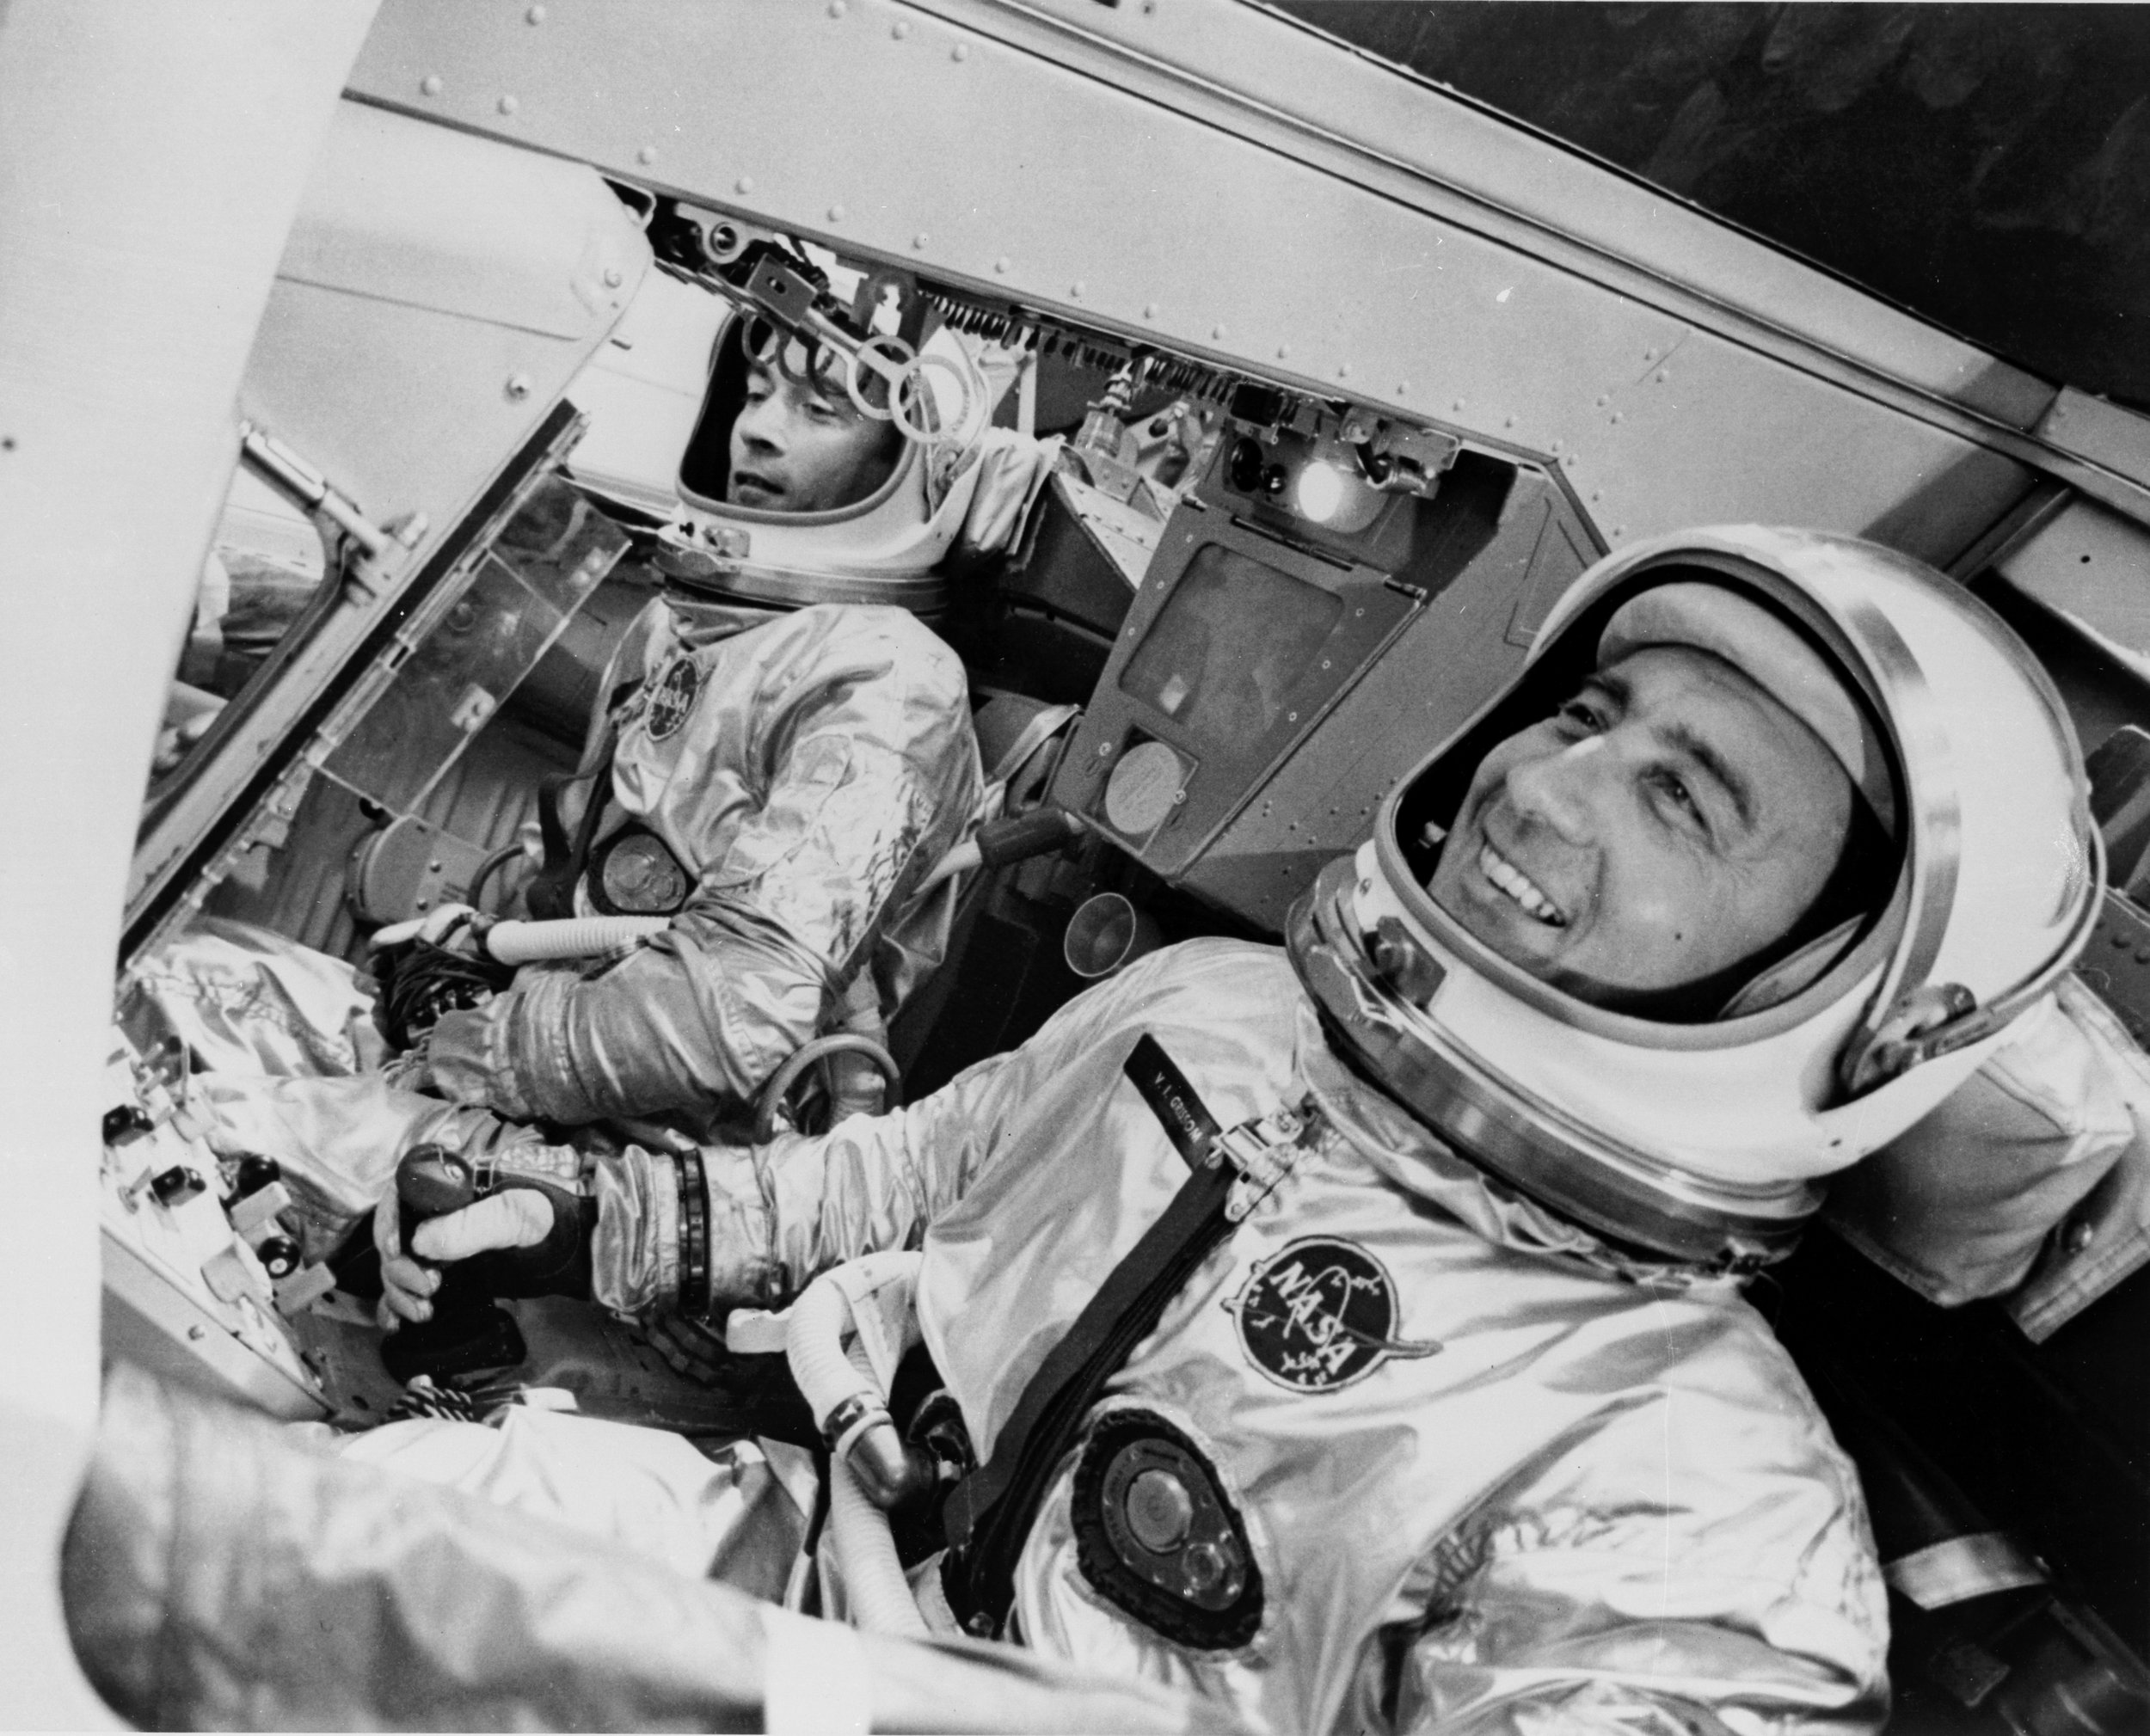 Gus Grissom & John Young, the crew of Gemini 3 in March, 1965. Contraband corned beef sandwich not pictured.